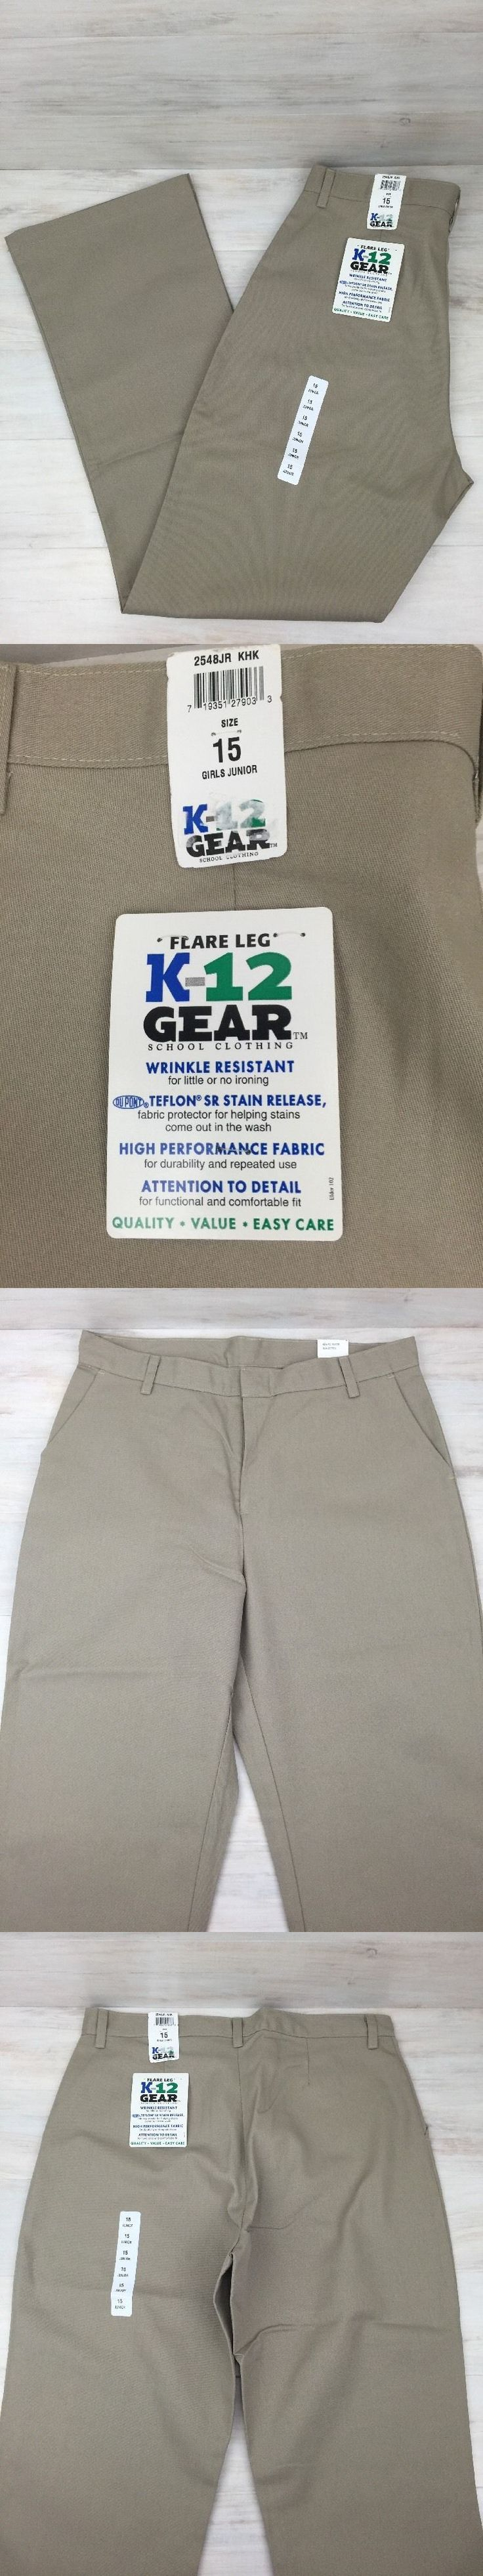 Uniforms 175652: School Uniform Pants Khaki Girl Junior Sz 15 Flare Lot Of 3 K-12 Gear 2548Jr Nwt -> BUY IT NOW ONLY: $44.99 on eBay!